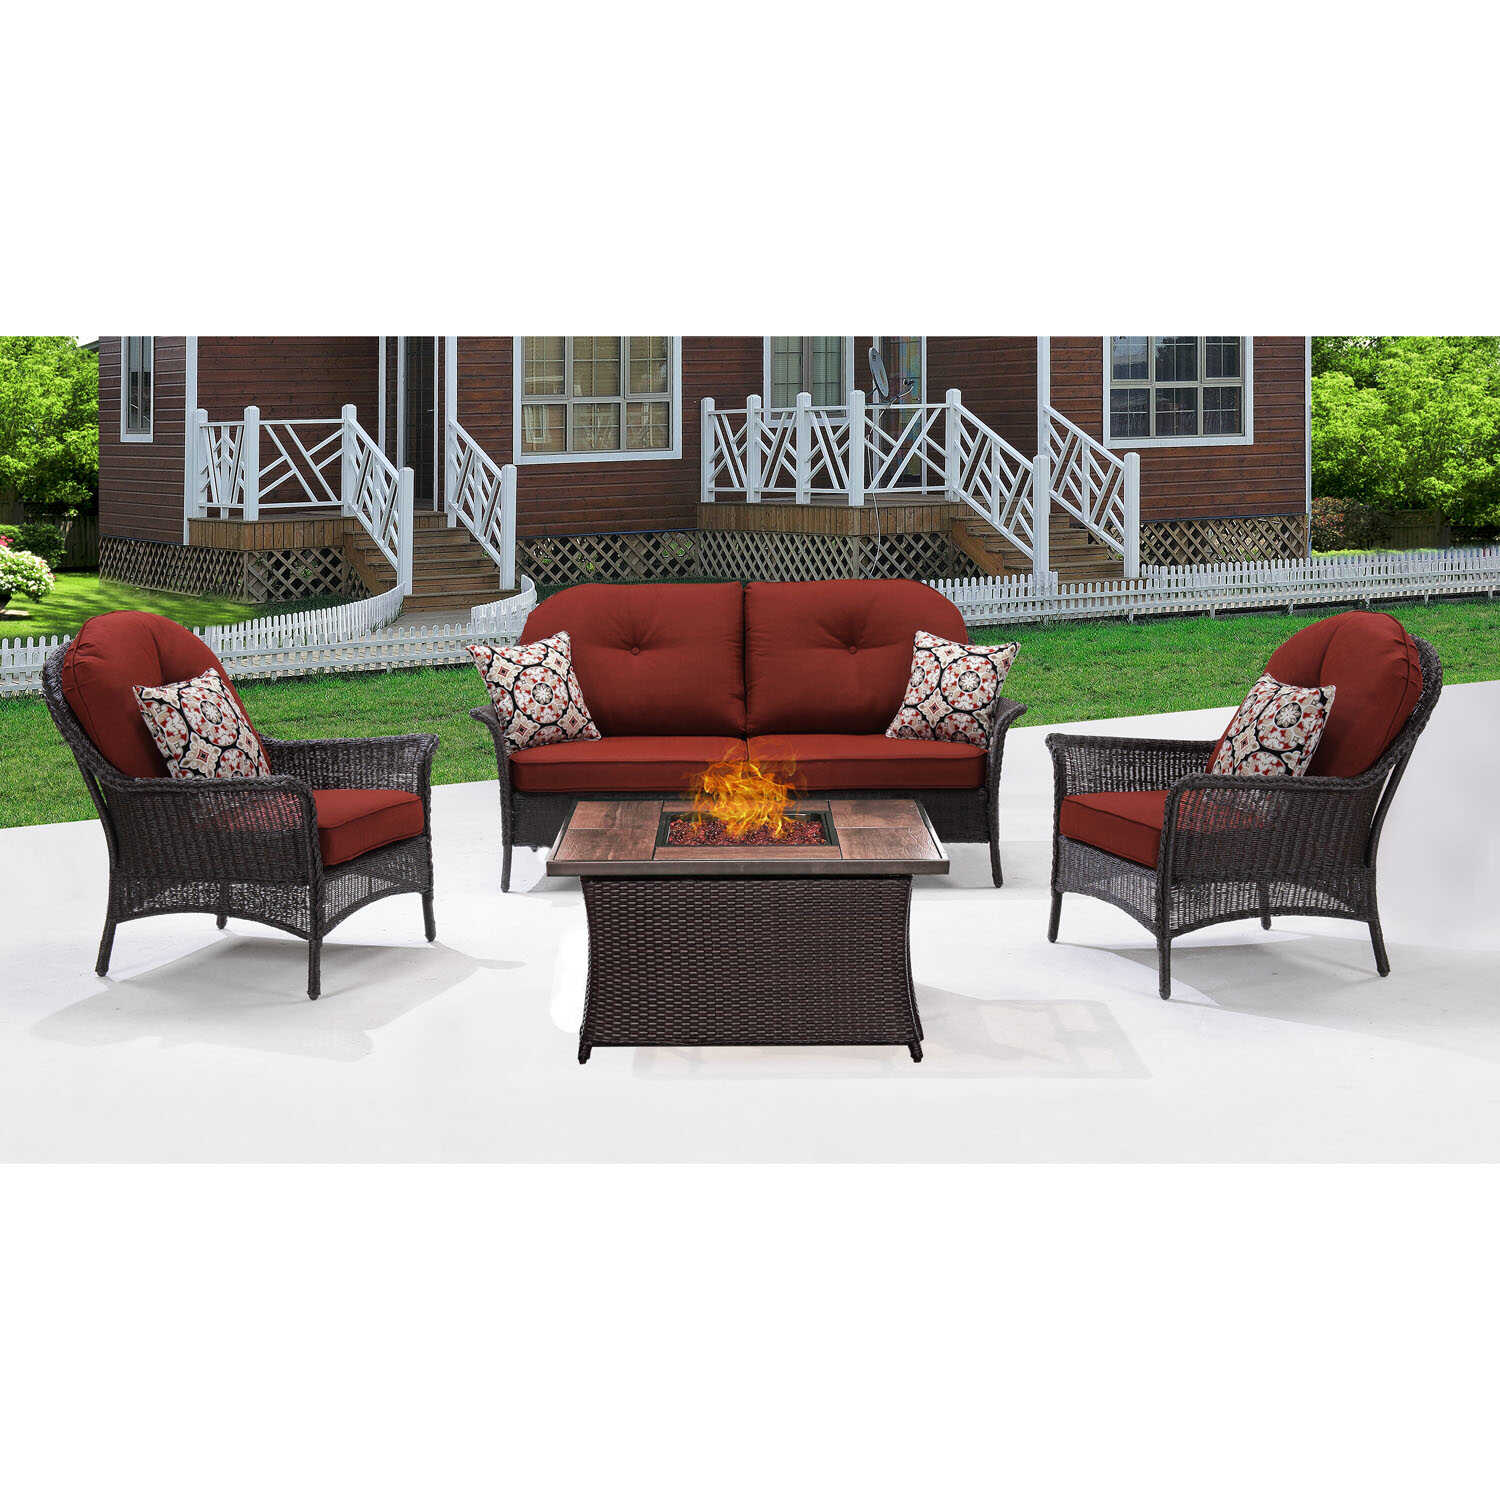 Hanover  San Marino  6 pc. Java  Steel  Firepit Set  Red